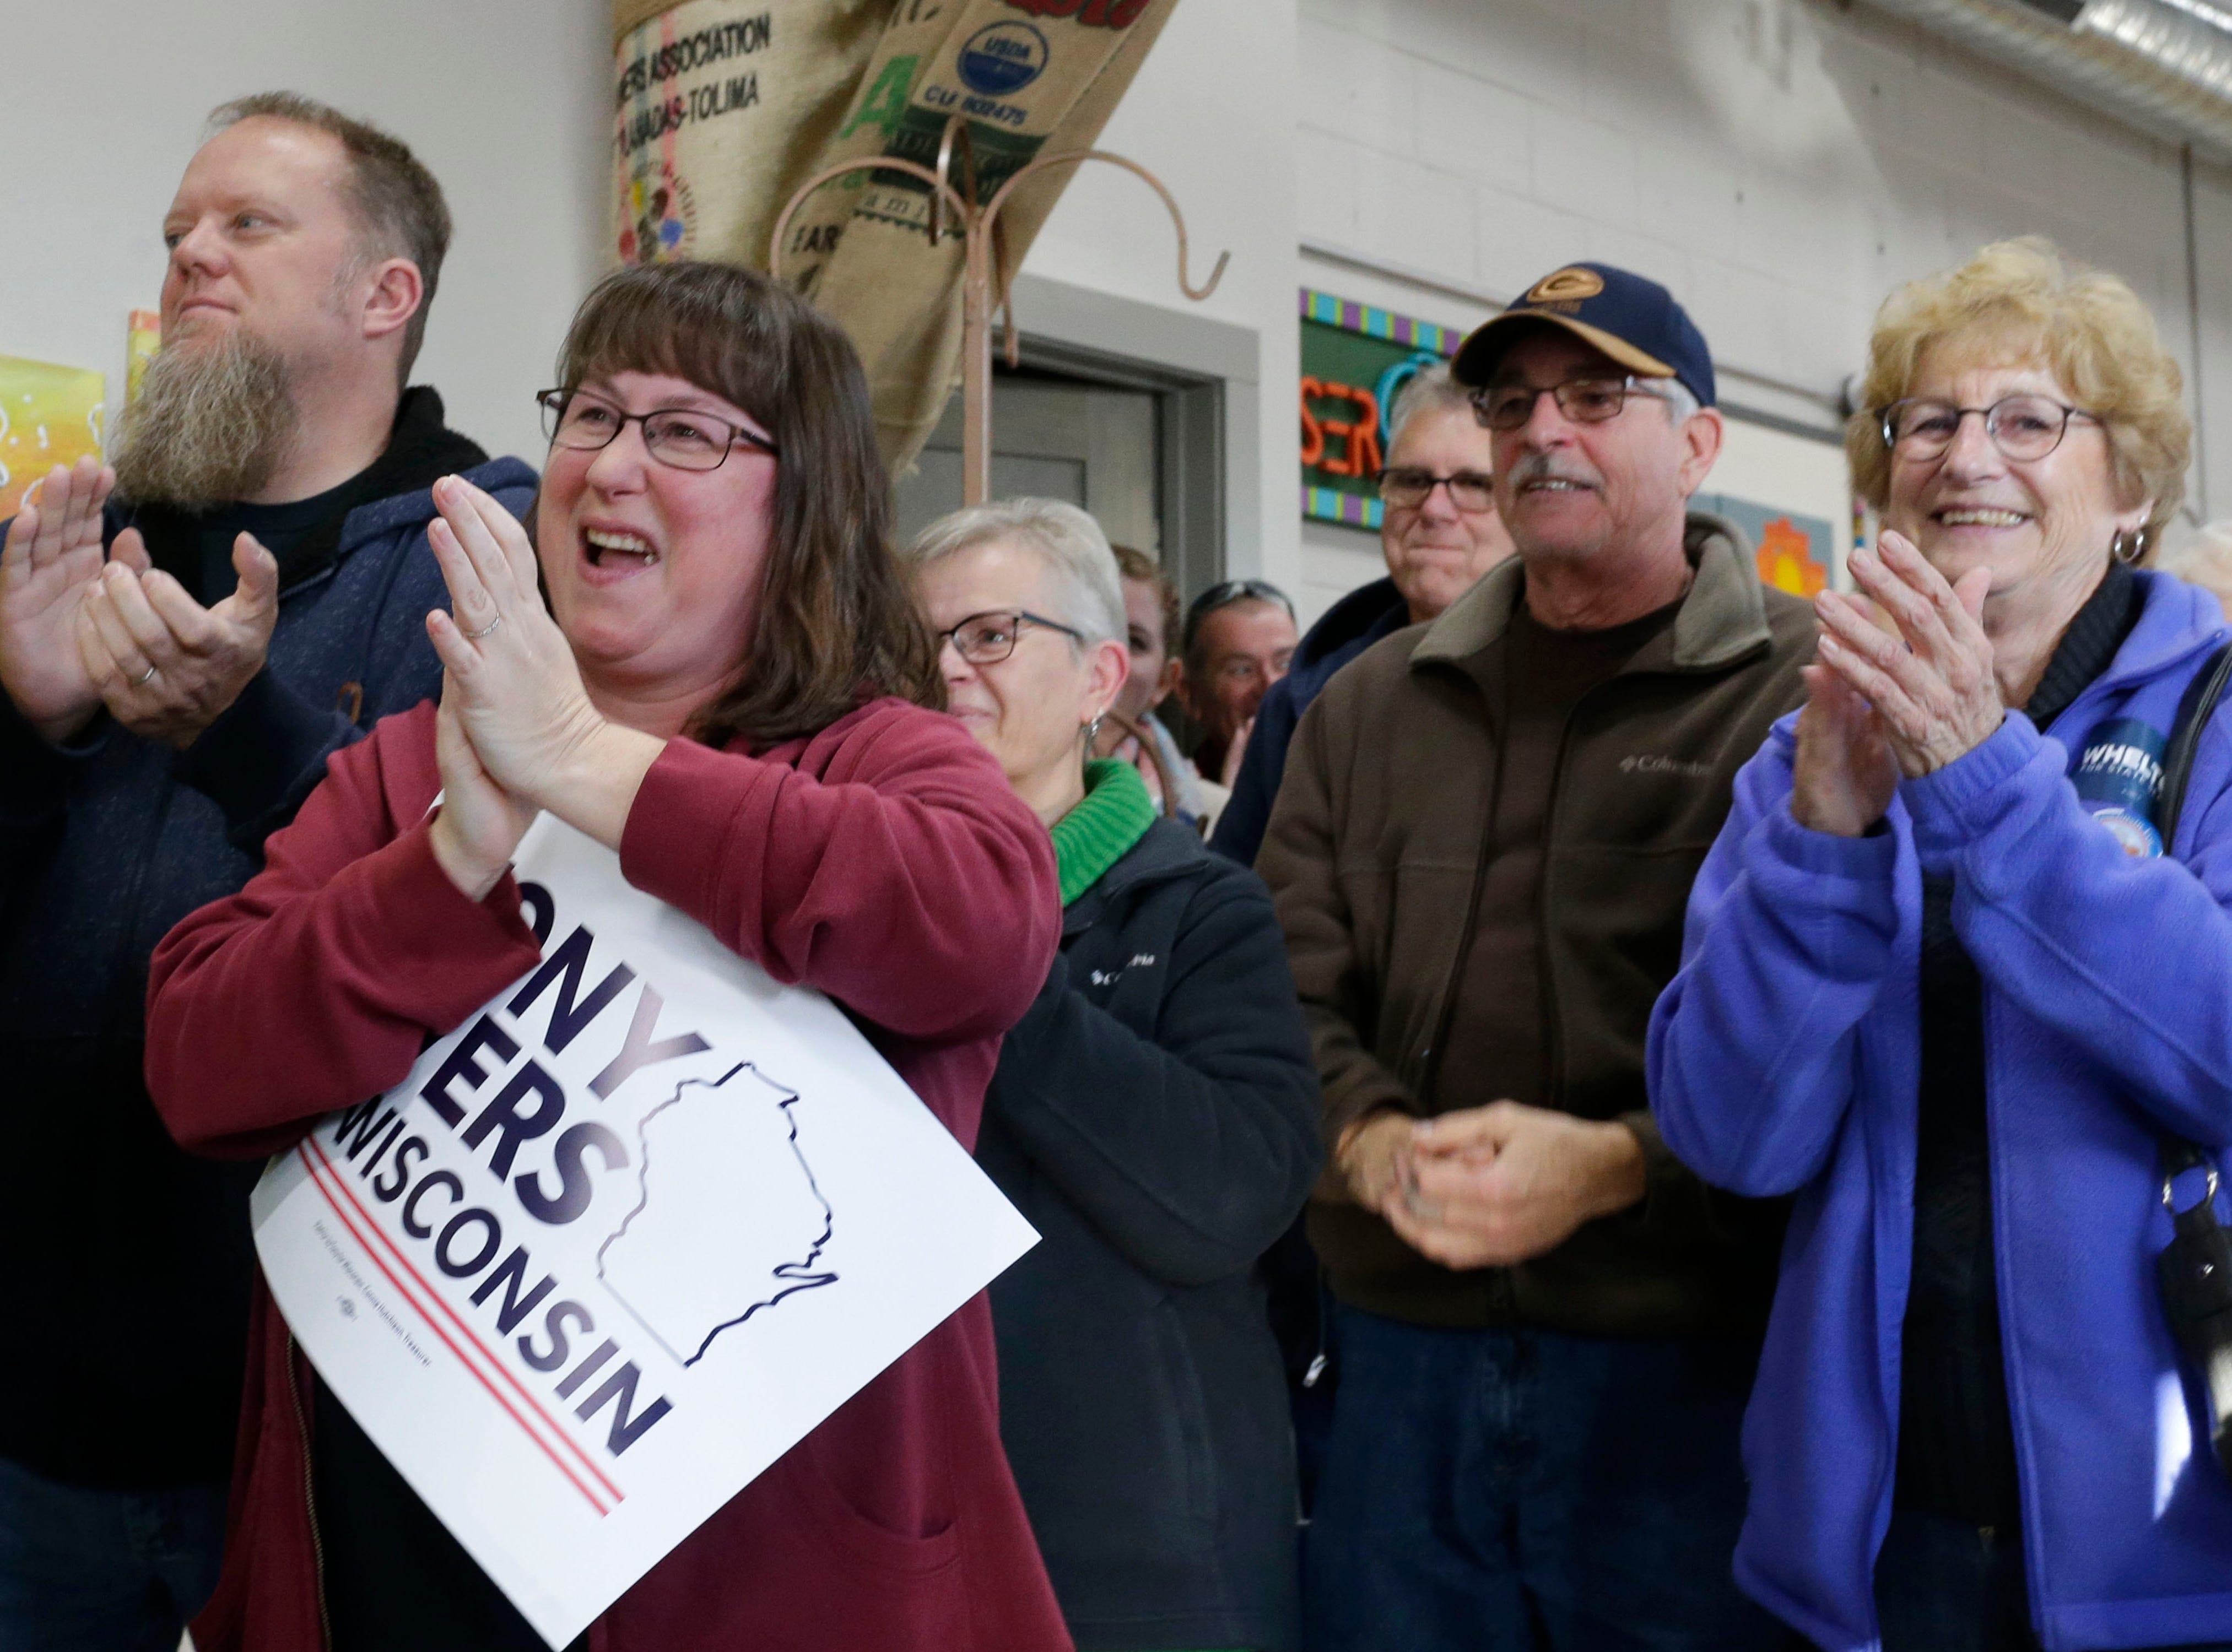 People clap during an introduction during Tony Ever's campaign stop at The Hub coffee shop, Saturday, November 3, 2018, in Plymouth, Wis.